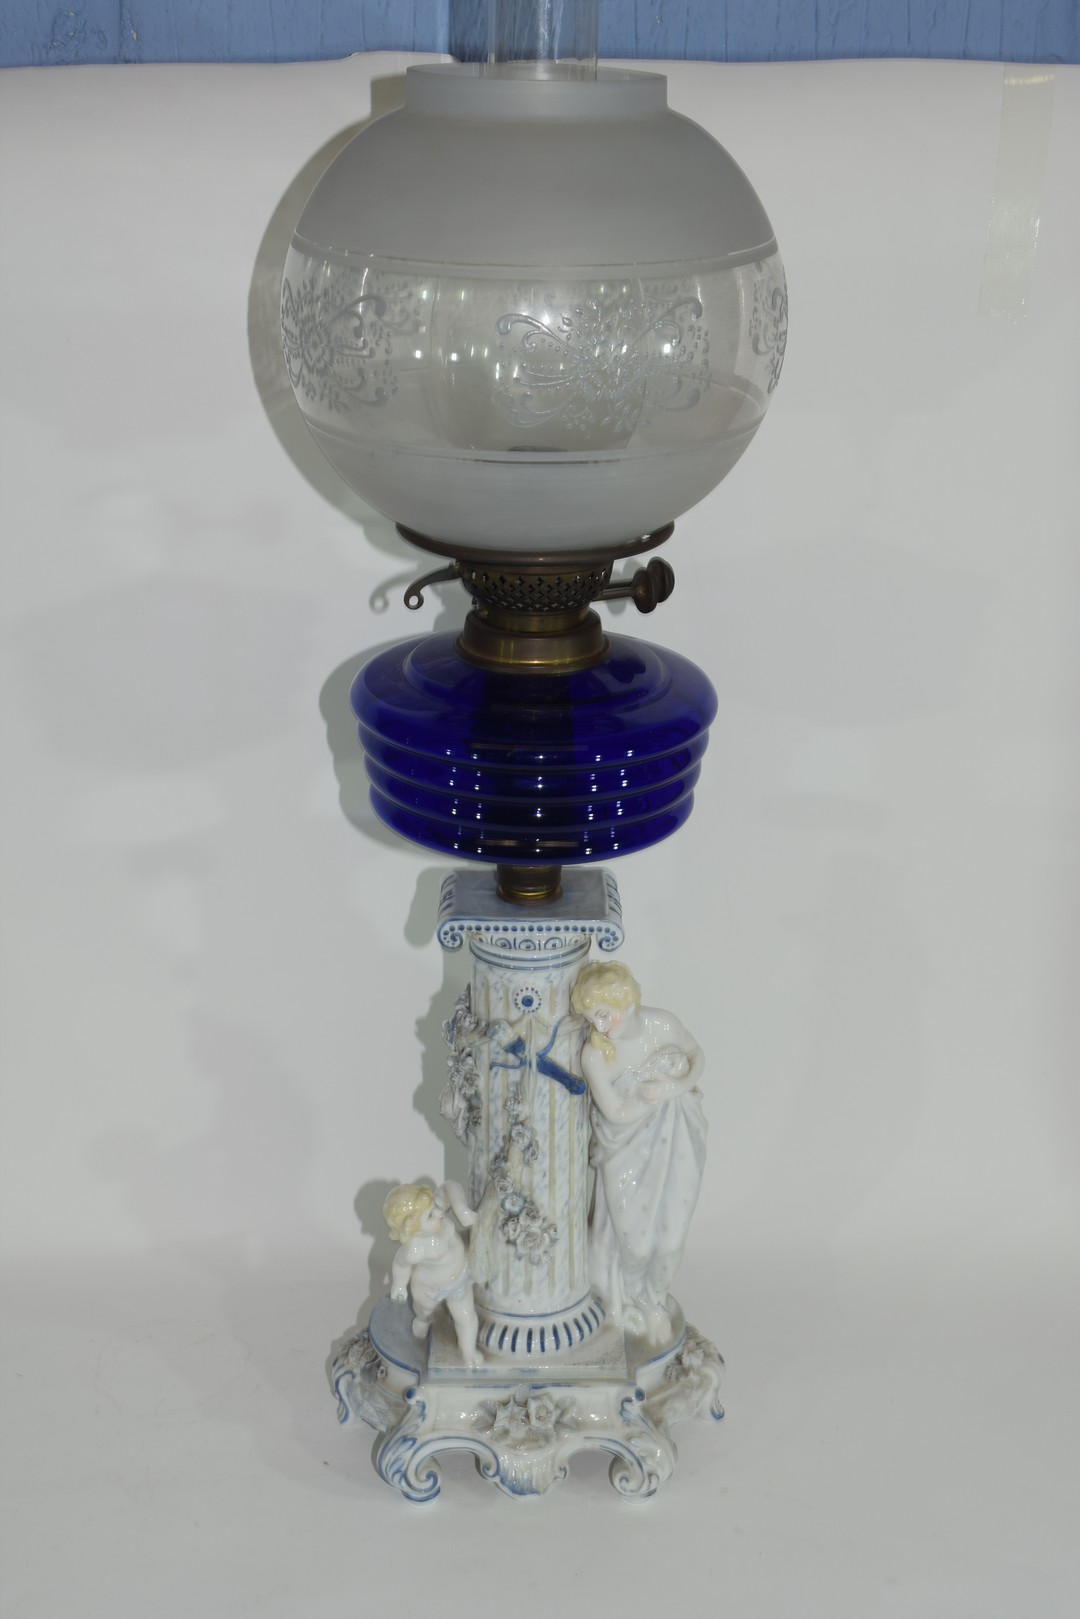 Oil lamp with blue glass reservoir